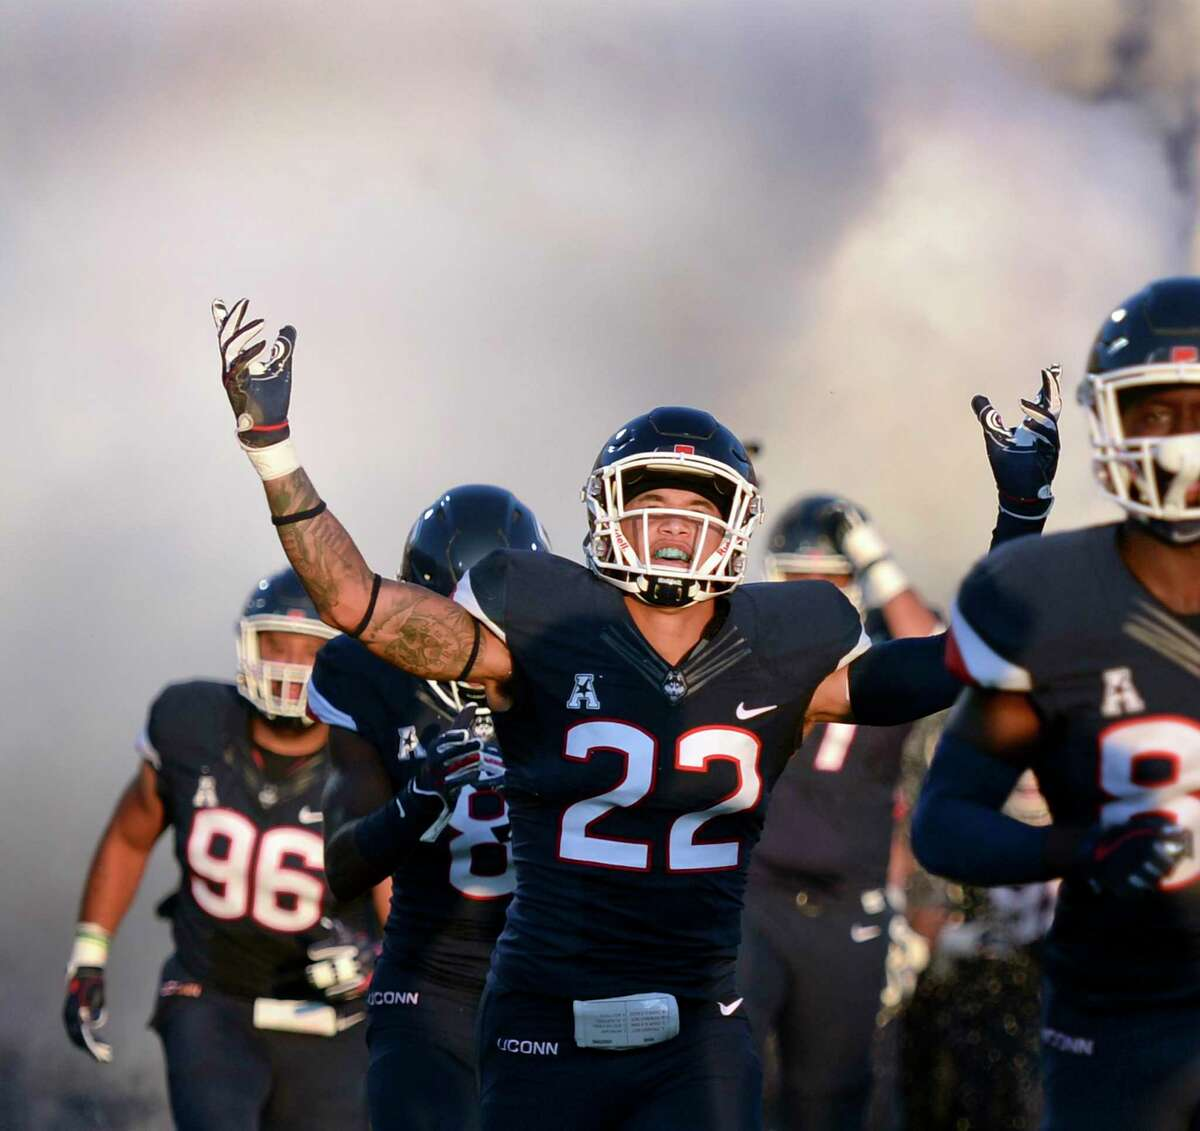 UConn linebacker Eli Thomas (22) raises his arms to the crowd as the Huskies take the field for their opening game of the season against Central Florida on Aug. 30, 2018, in East Hartford.